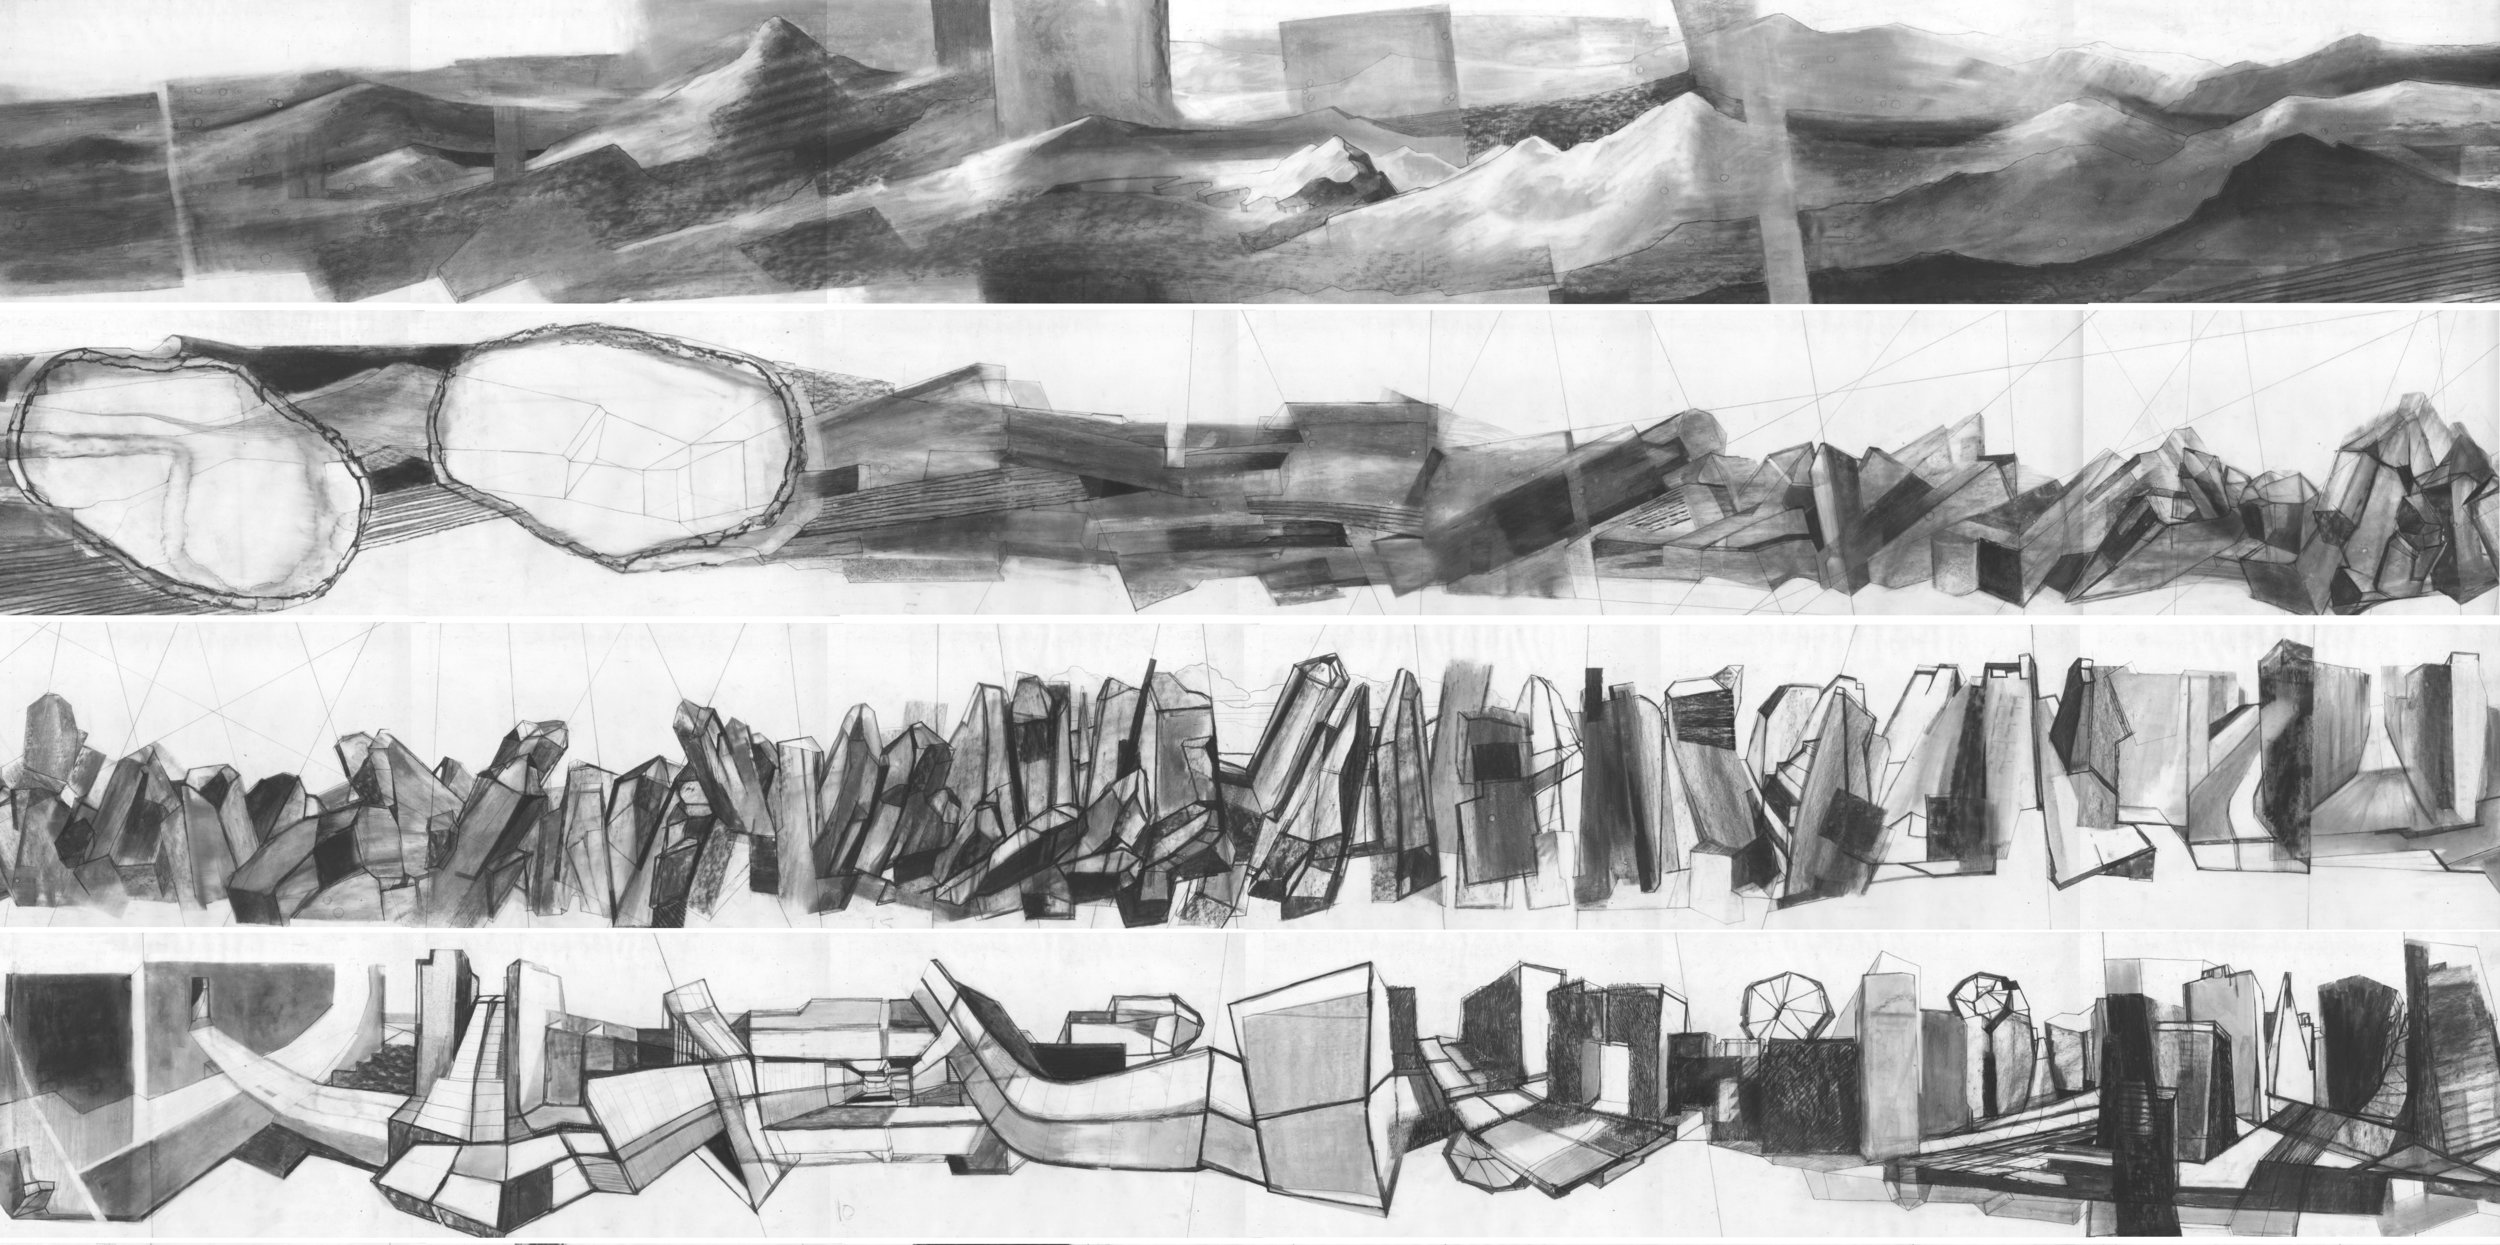 /// Cycle n°3  / detail / charcoal and black pastel on tracing paper / 20 meters - 33cm / 2013